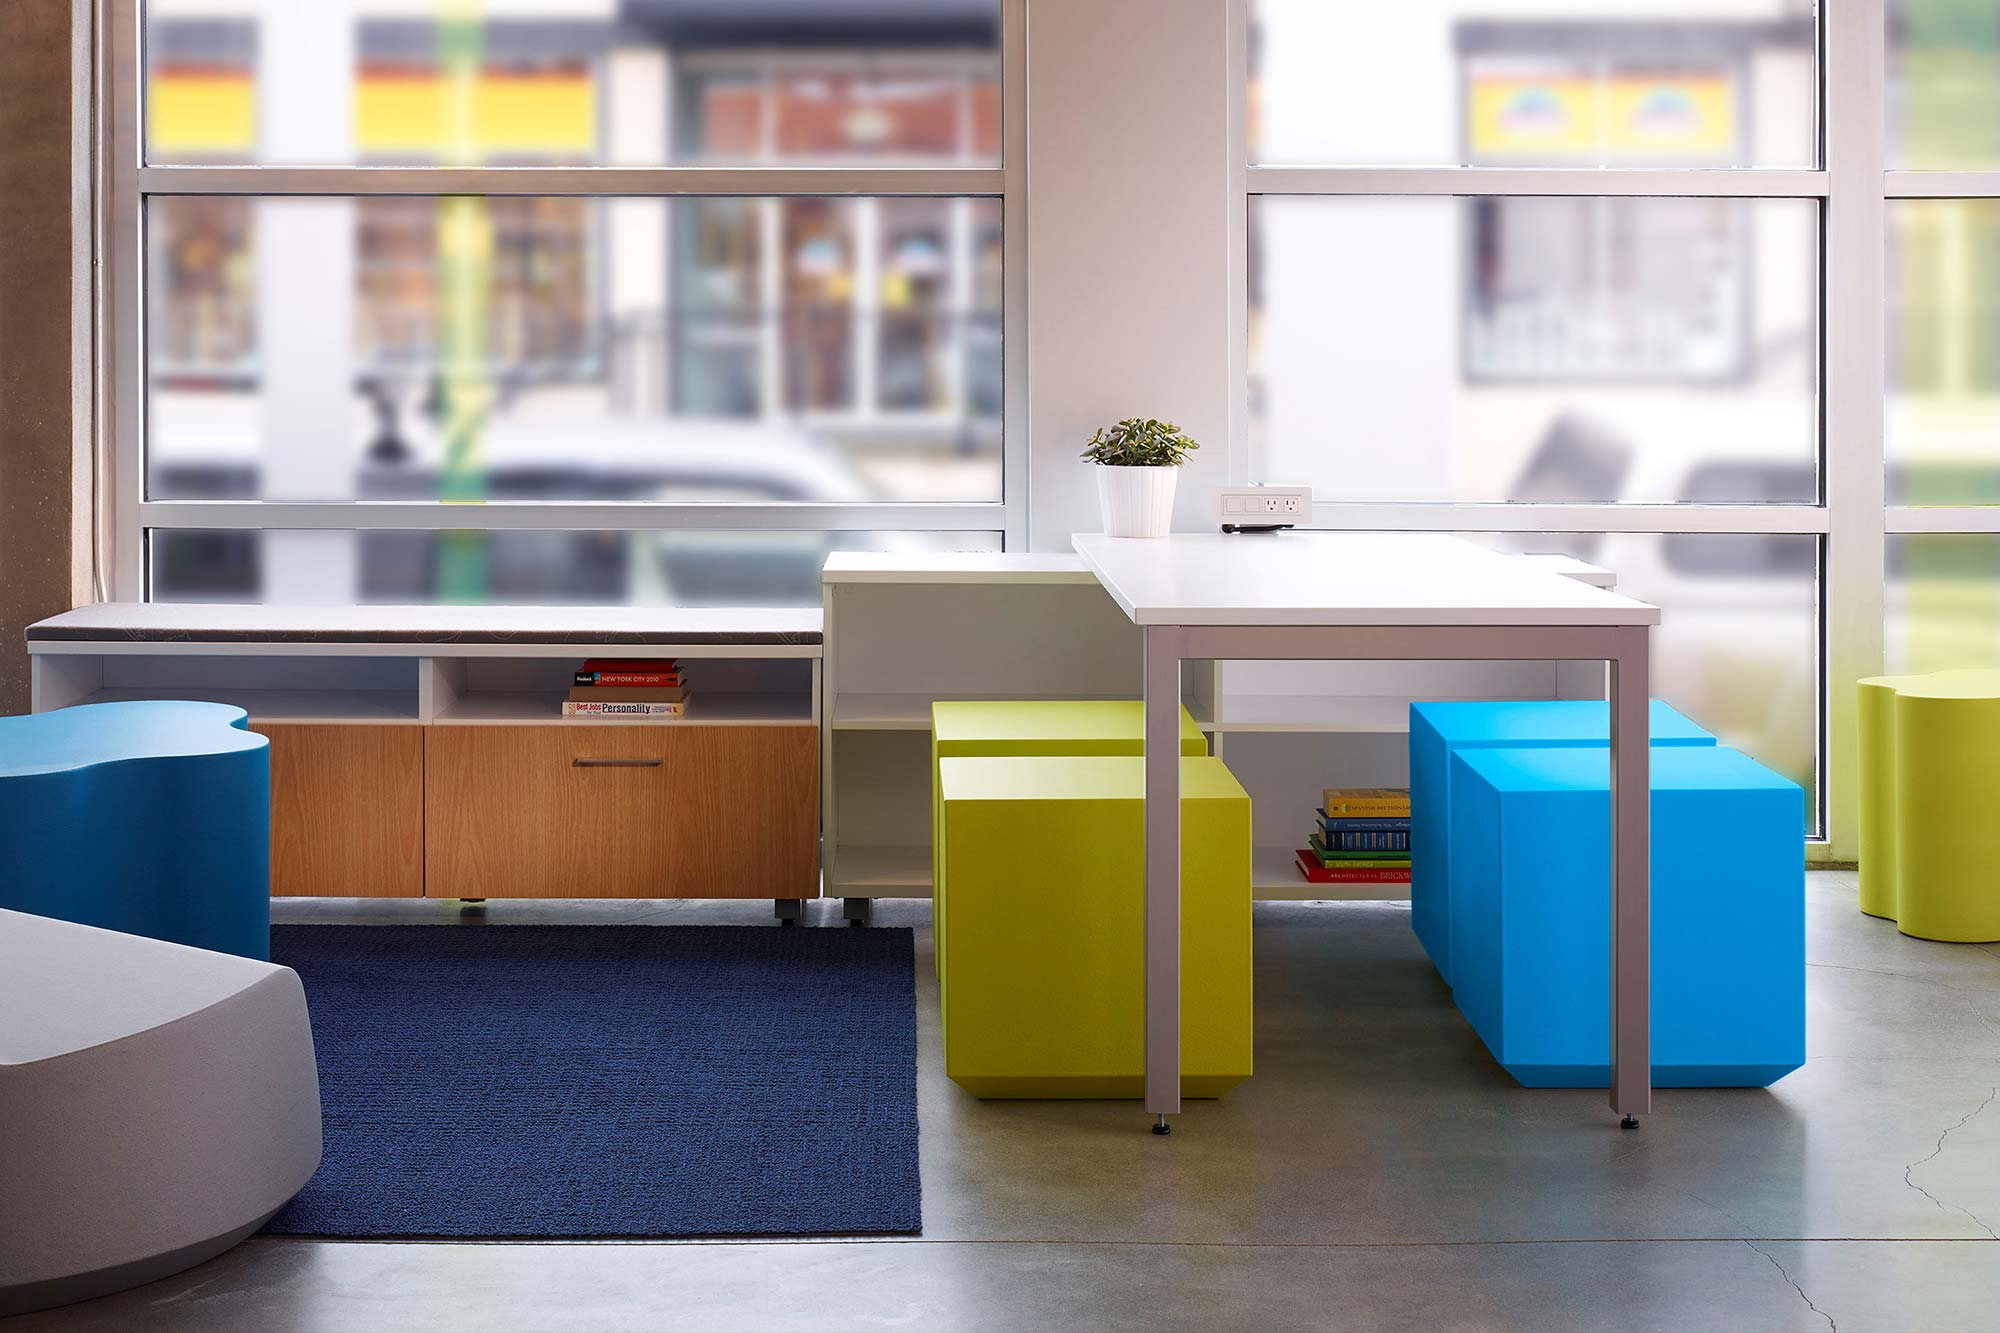 Today's work environment demands offices and workstations that are flexible, modular and wired to facilitate open communication and collaboration.